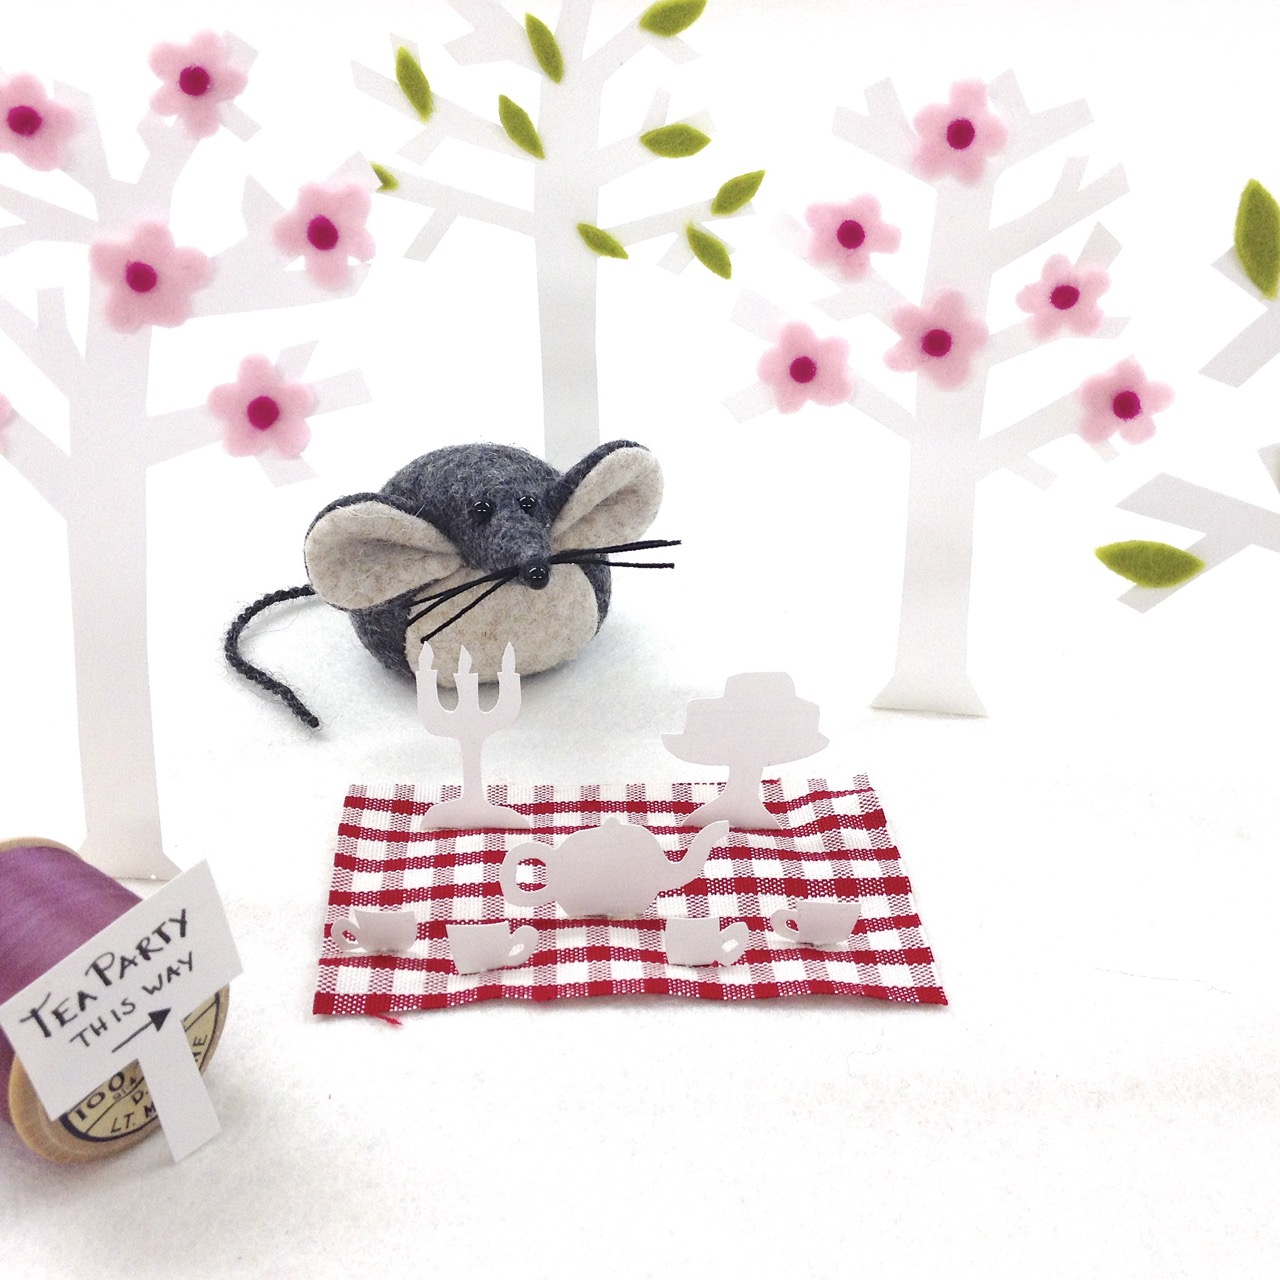 Mika the Mouse from Bilberry Woods Collection getting ready for a tea party in the woods.